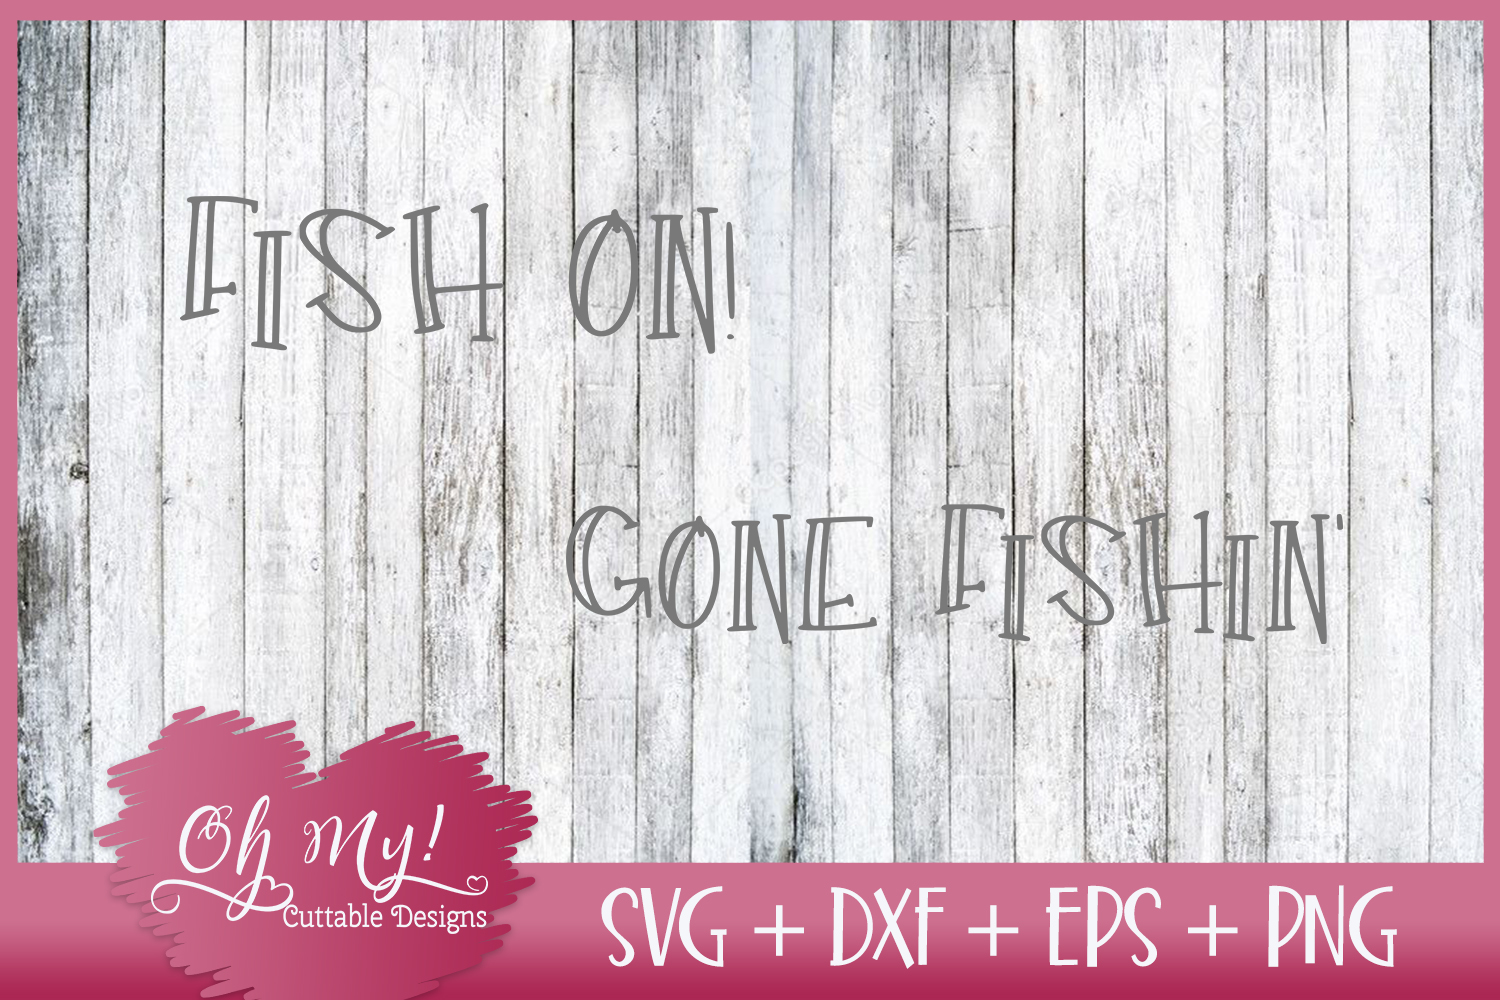 Fish On! - Gone Fishin' - SVG DXF EPS PNG Cutting File example image 3